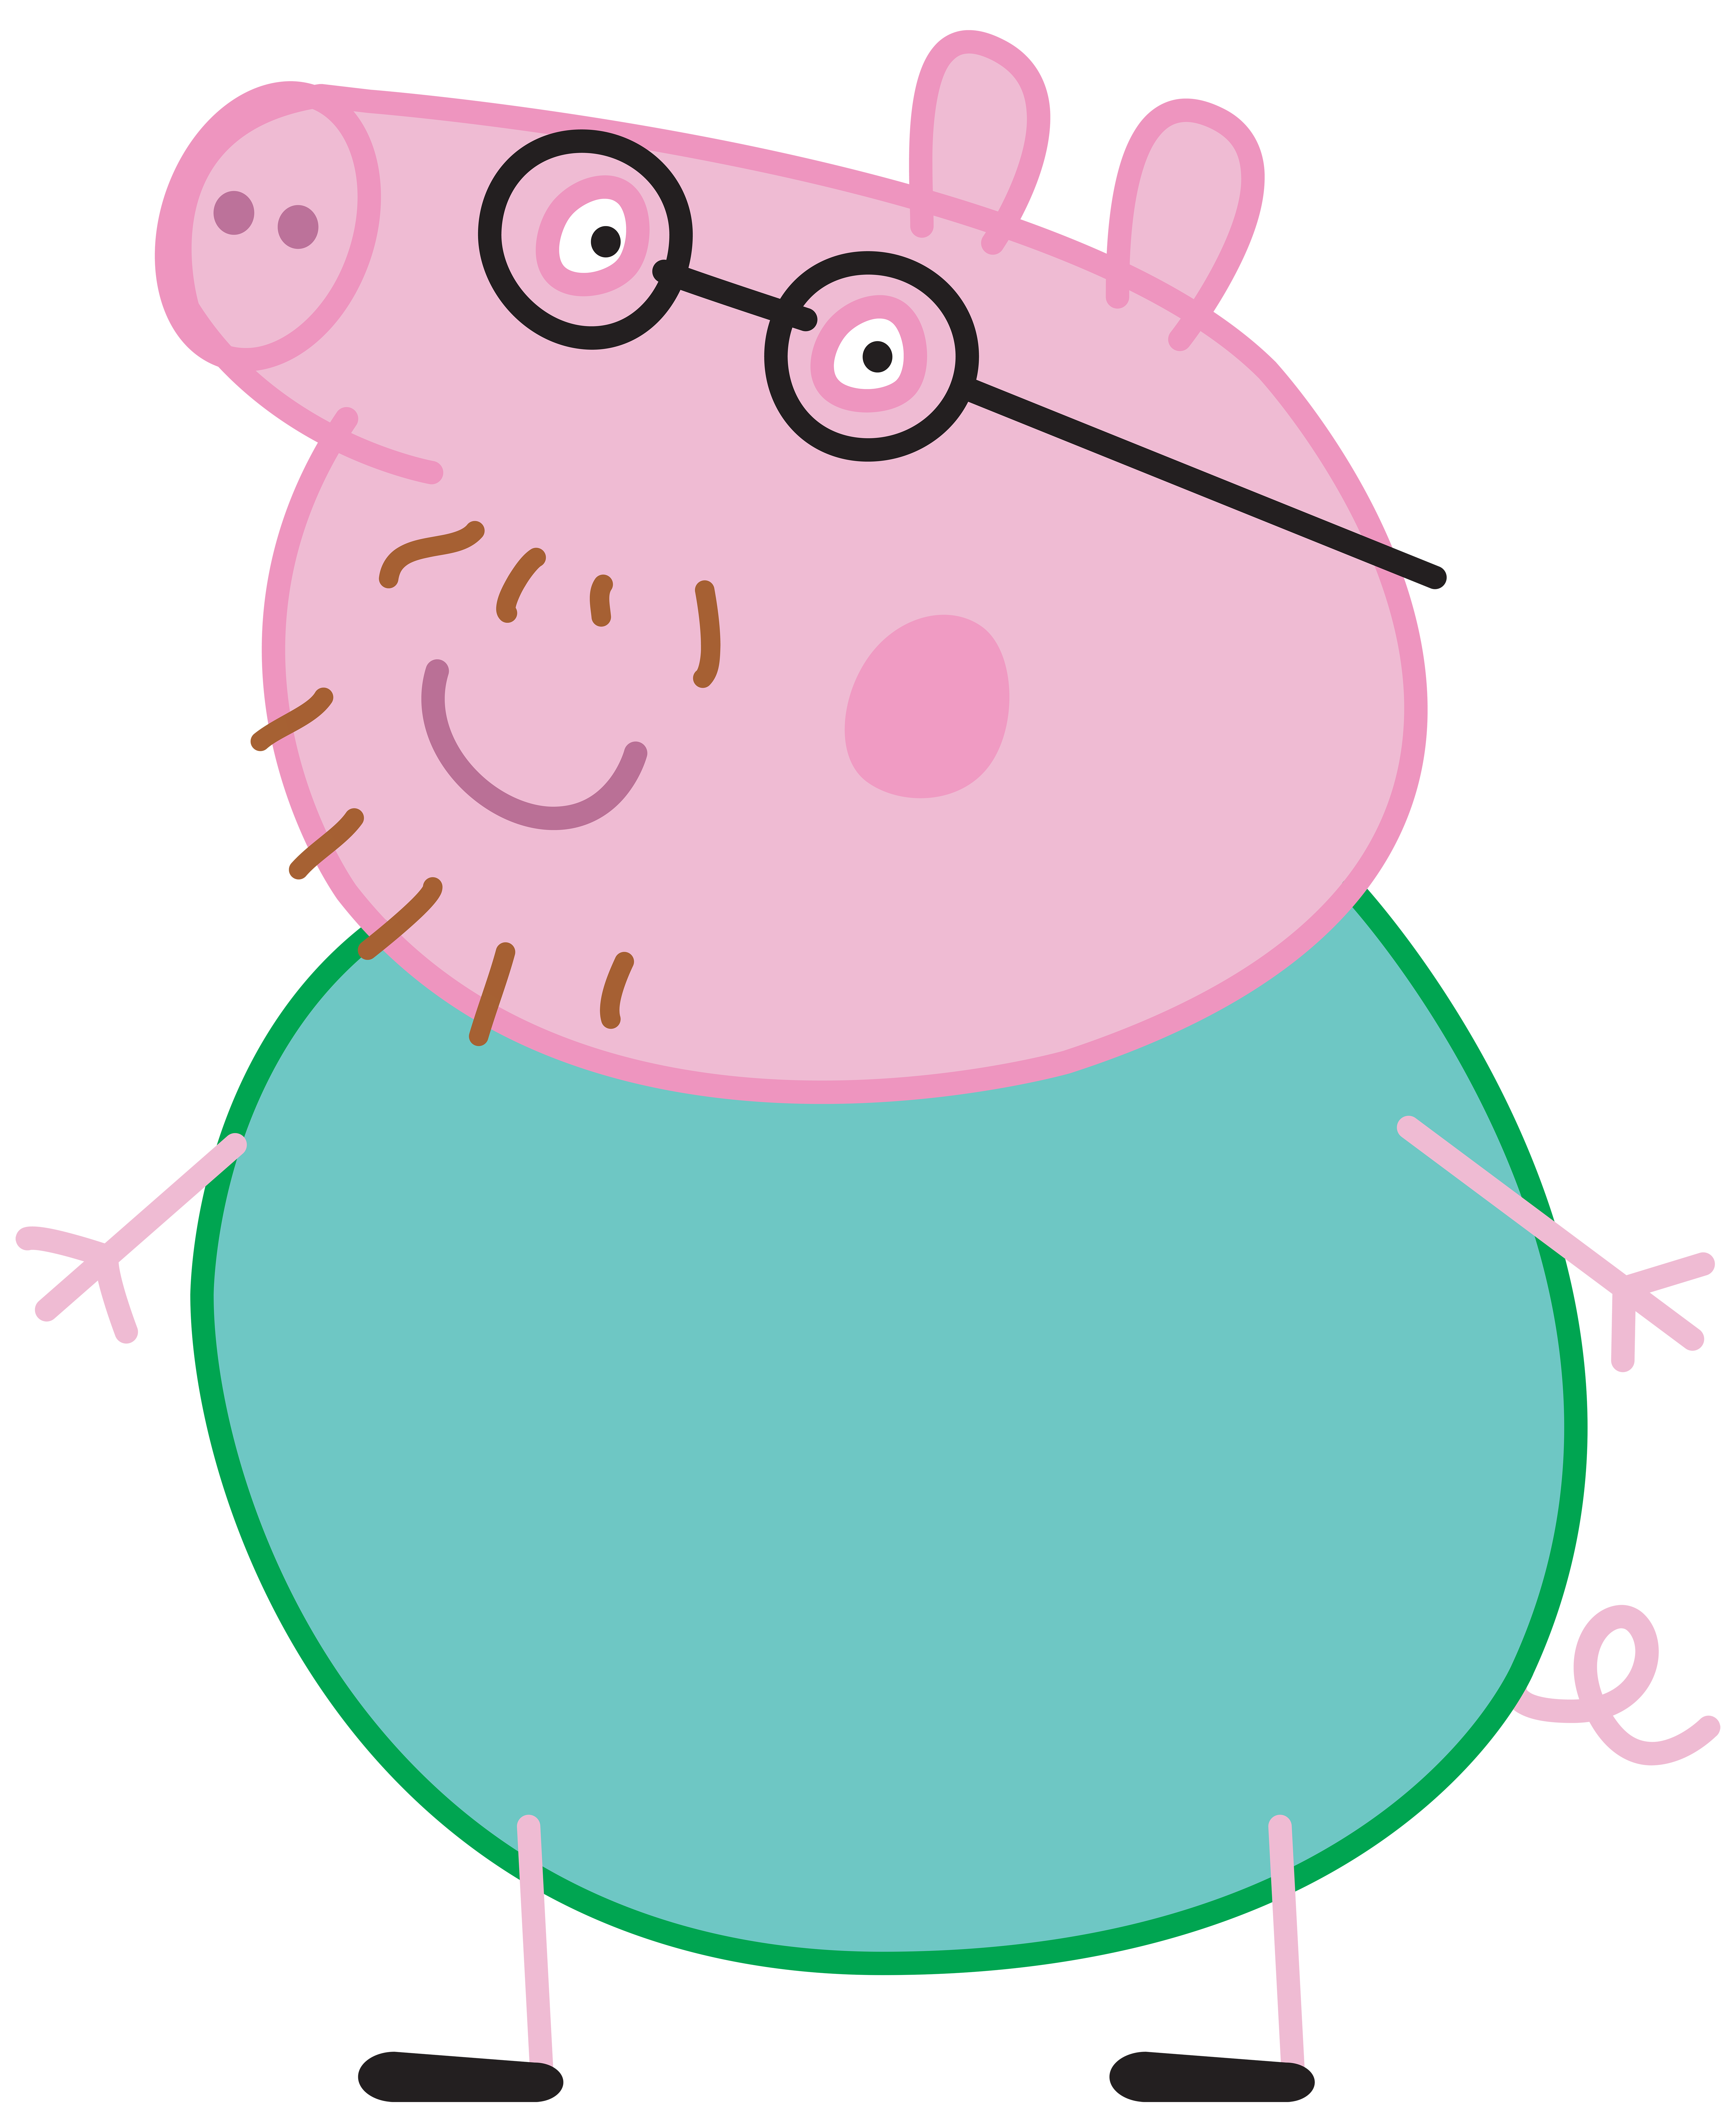 Pin By Georggi Xu On Pic Peppa Pig Peppa Pig Daddy Pig Pig Images